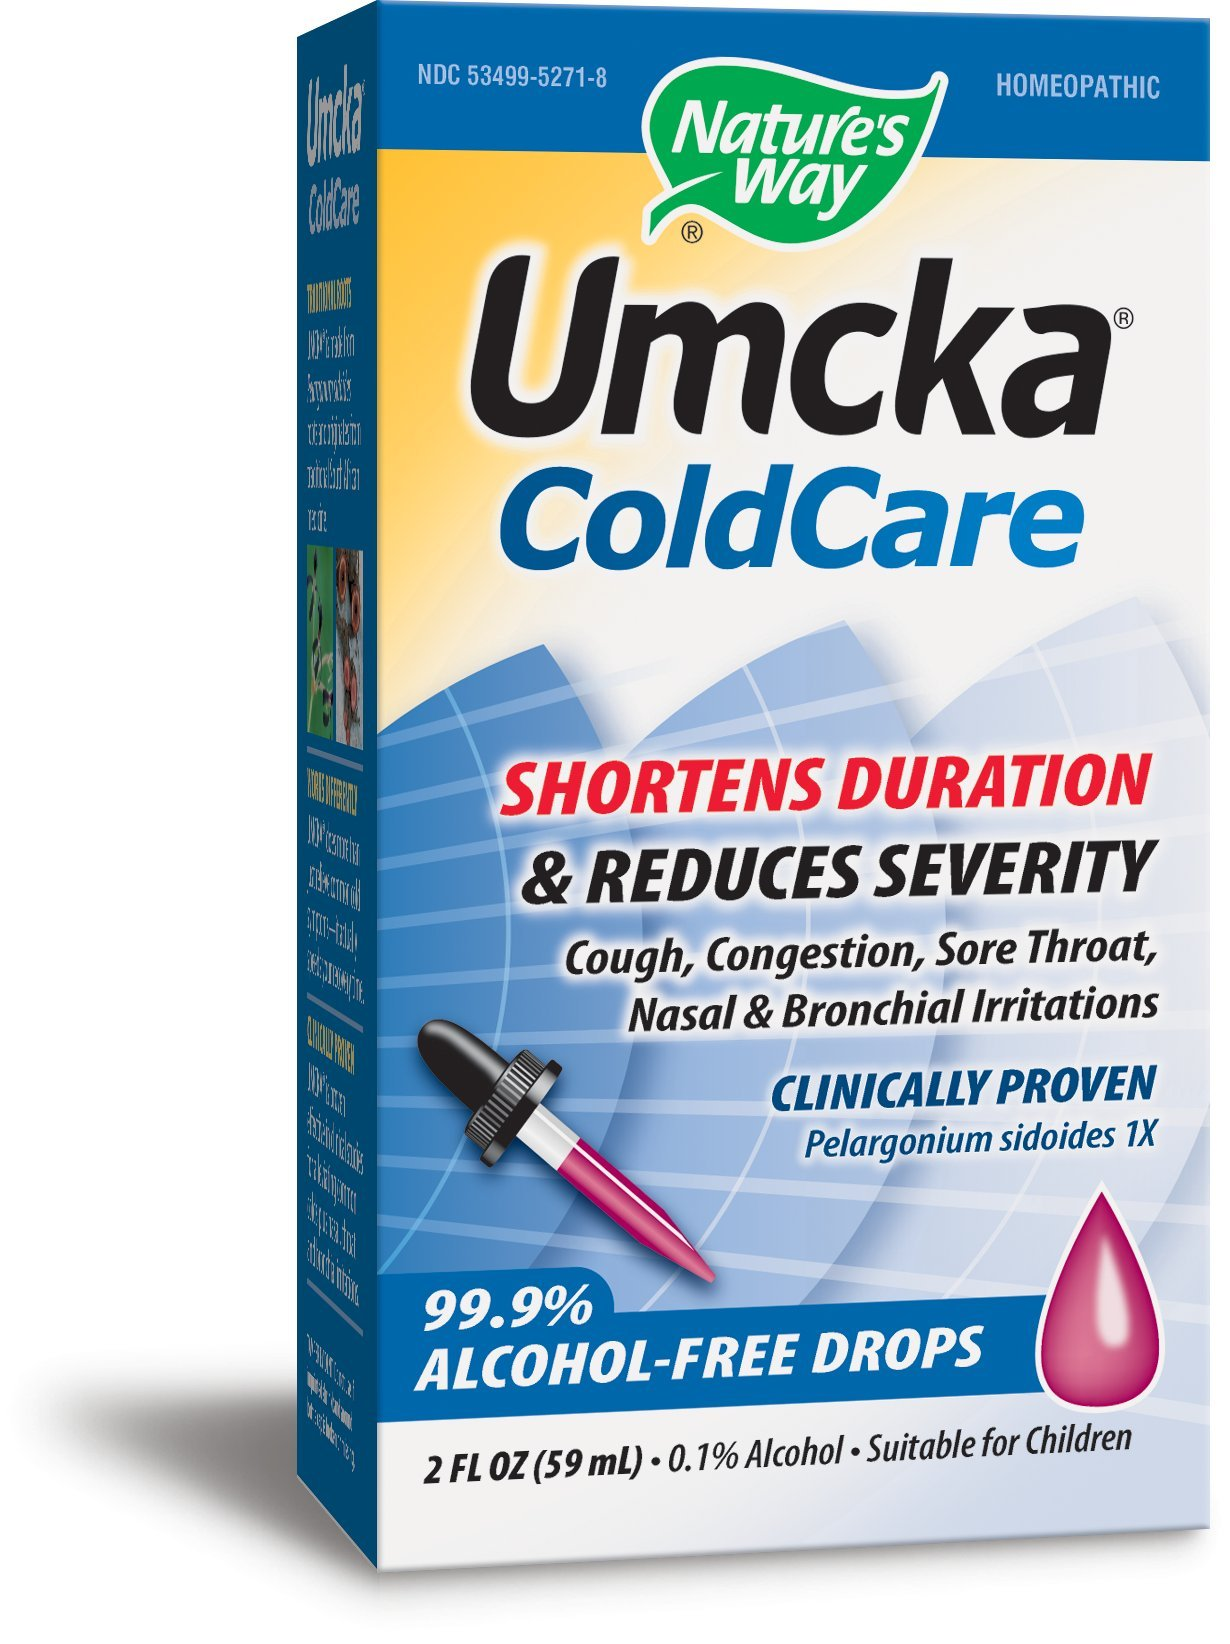 Nature's Way Umcka ColdCare Original  Alcohol Free Drops by Nature's Way